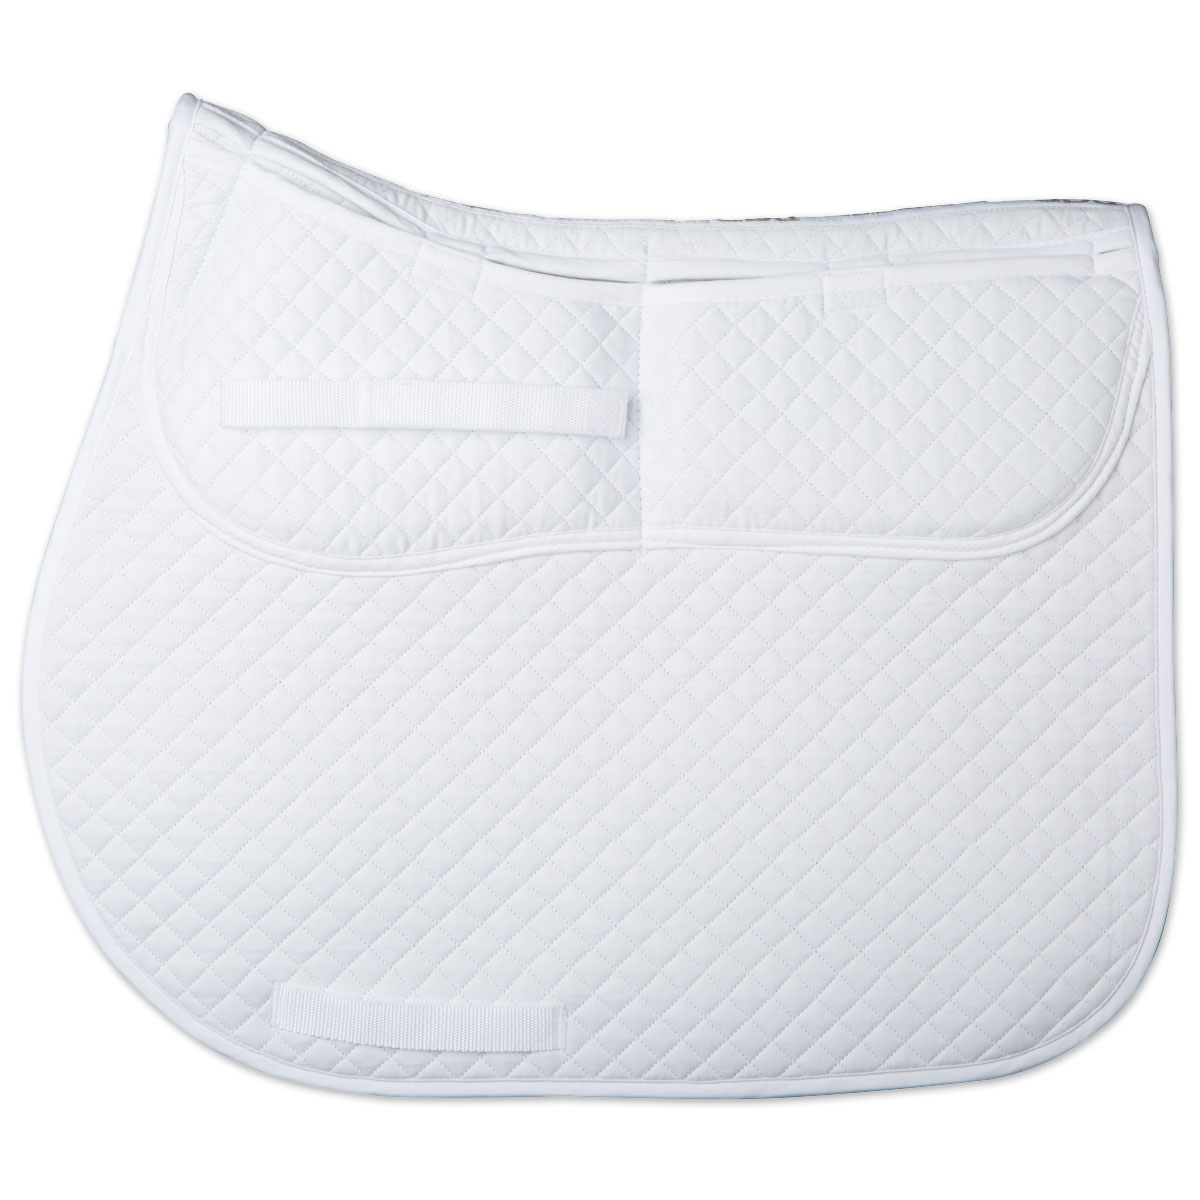 Equine Comfort Correction All Purpose Pad with Memory Foam Inserts